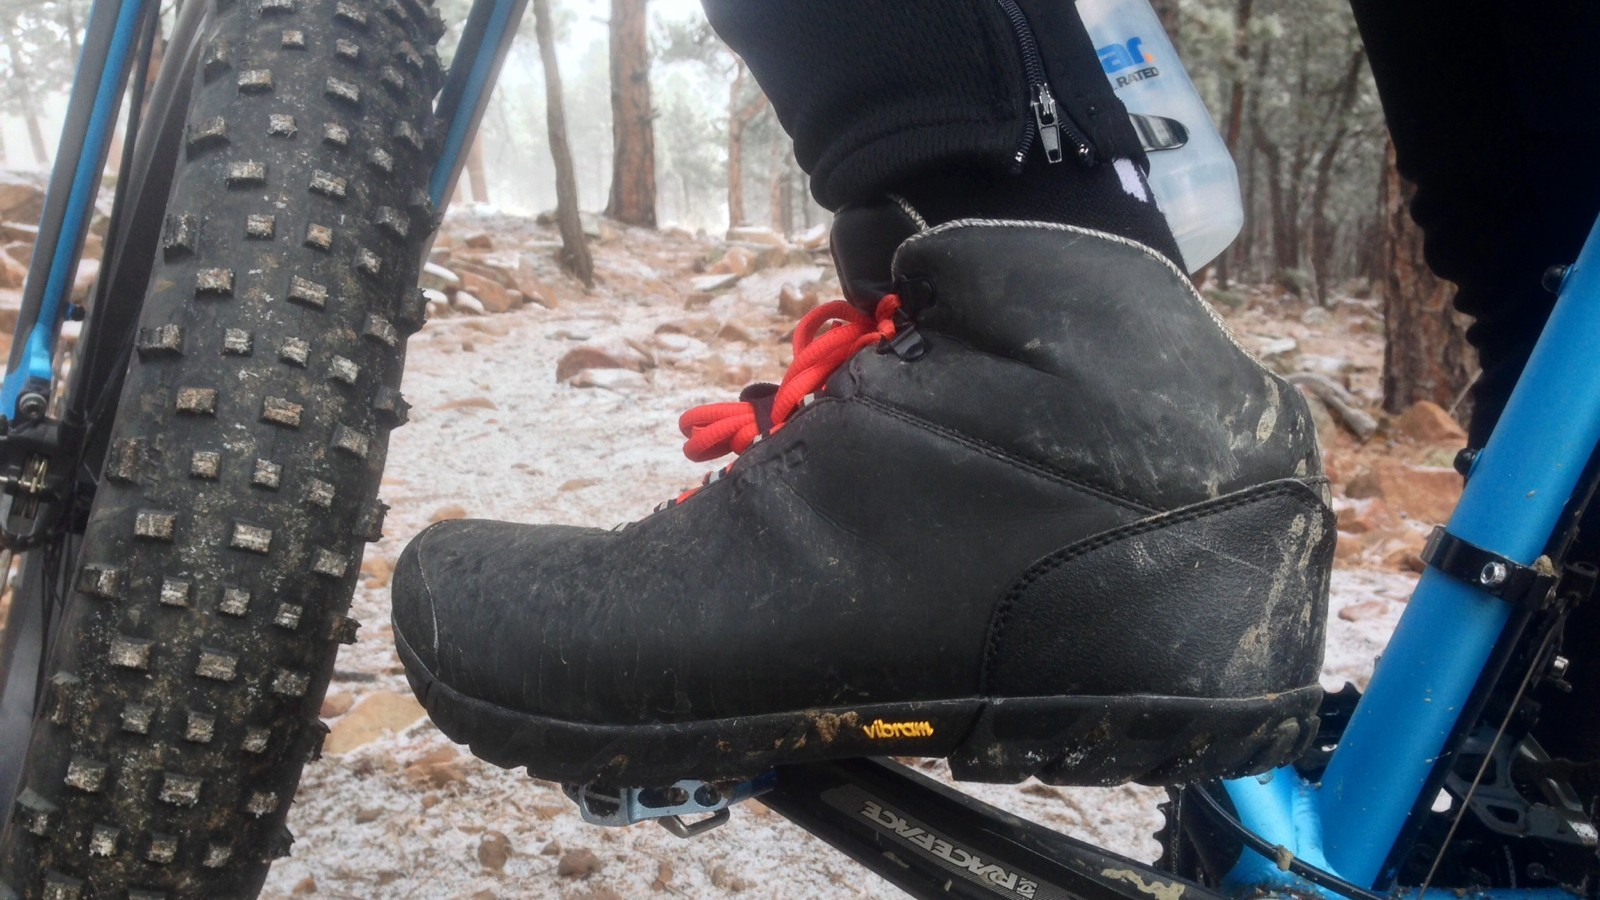 We found the boots to run slightly small, especially through the toe box. With loft often a key factor in warmth, we'd suggest going up at least half a size